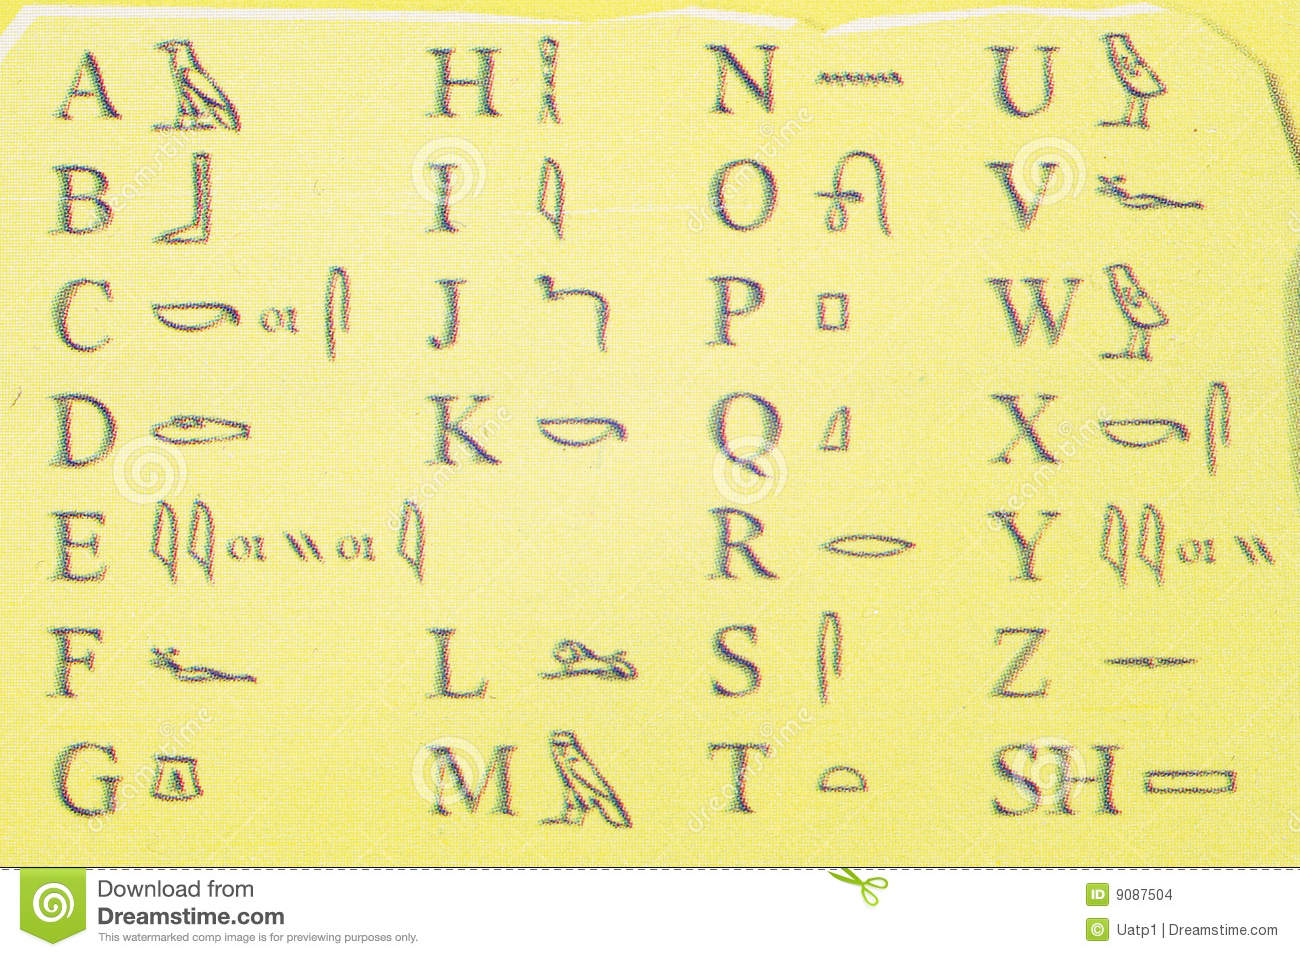 Ancient Egypt Hieroglyphics Alphabet